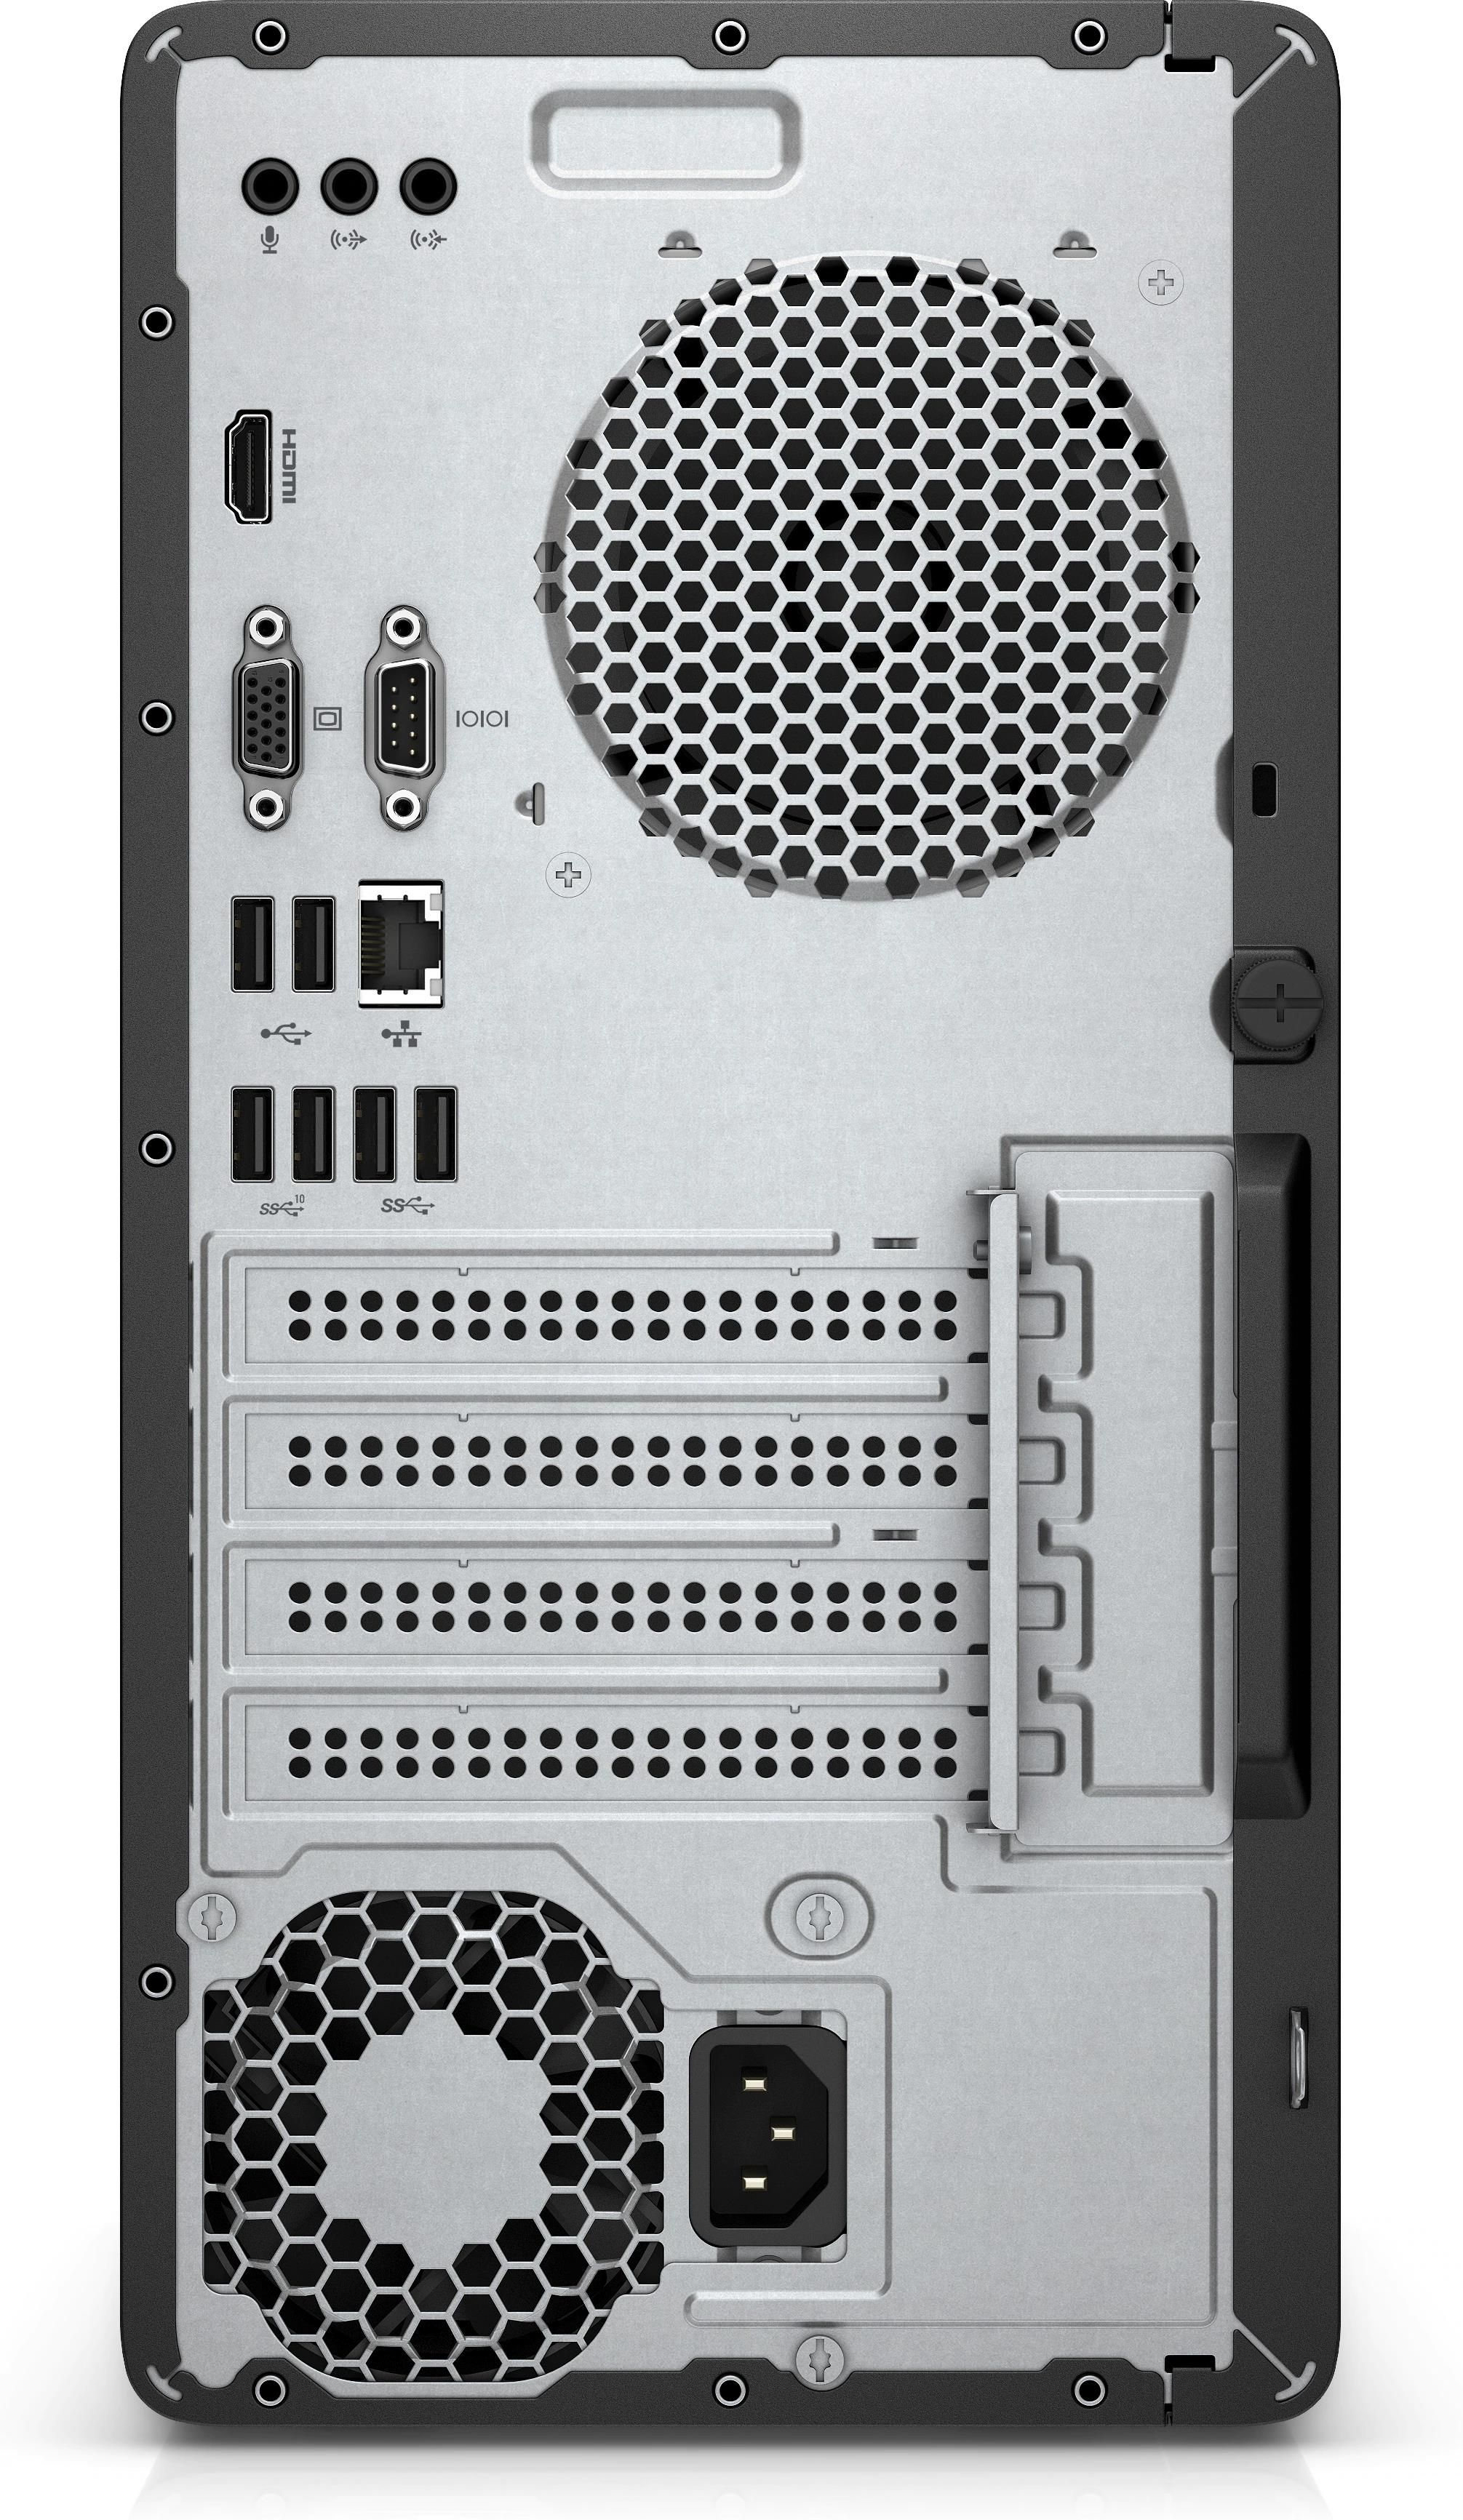 HP 285 G3 Microtower PC Ryzen 3 PRO (2200G) 3.5GHz 8GB 256GB SSD DVD Writer LAN Windows 10 Pro (Radeon Vega 8 Graphics)